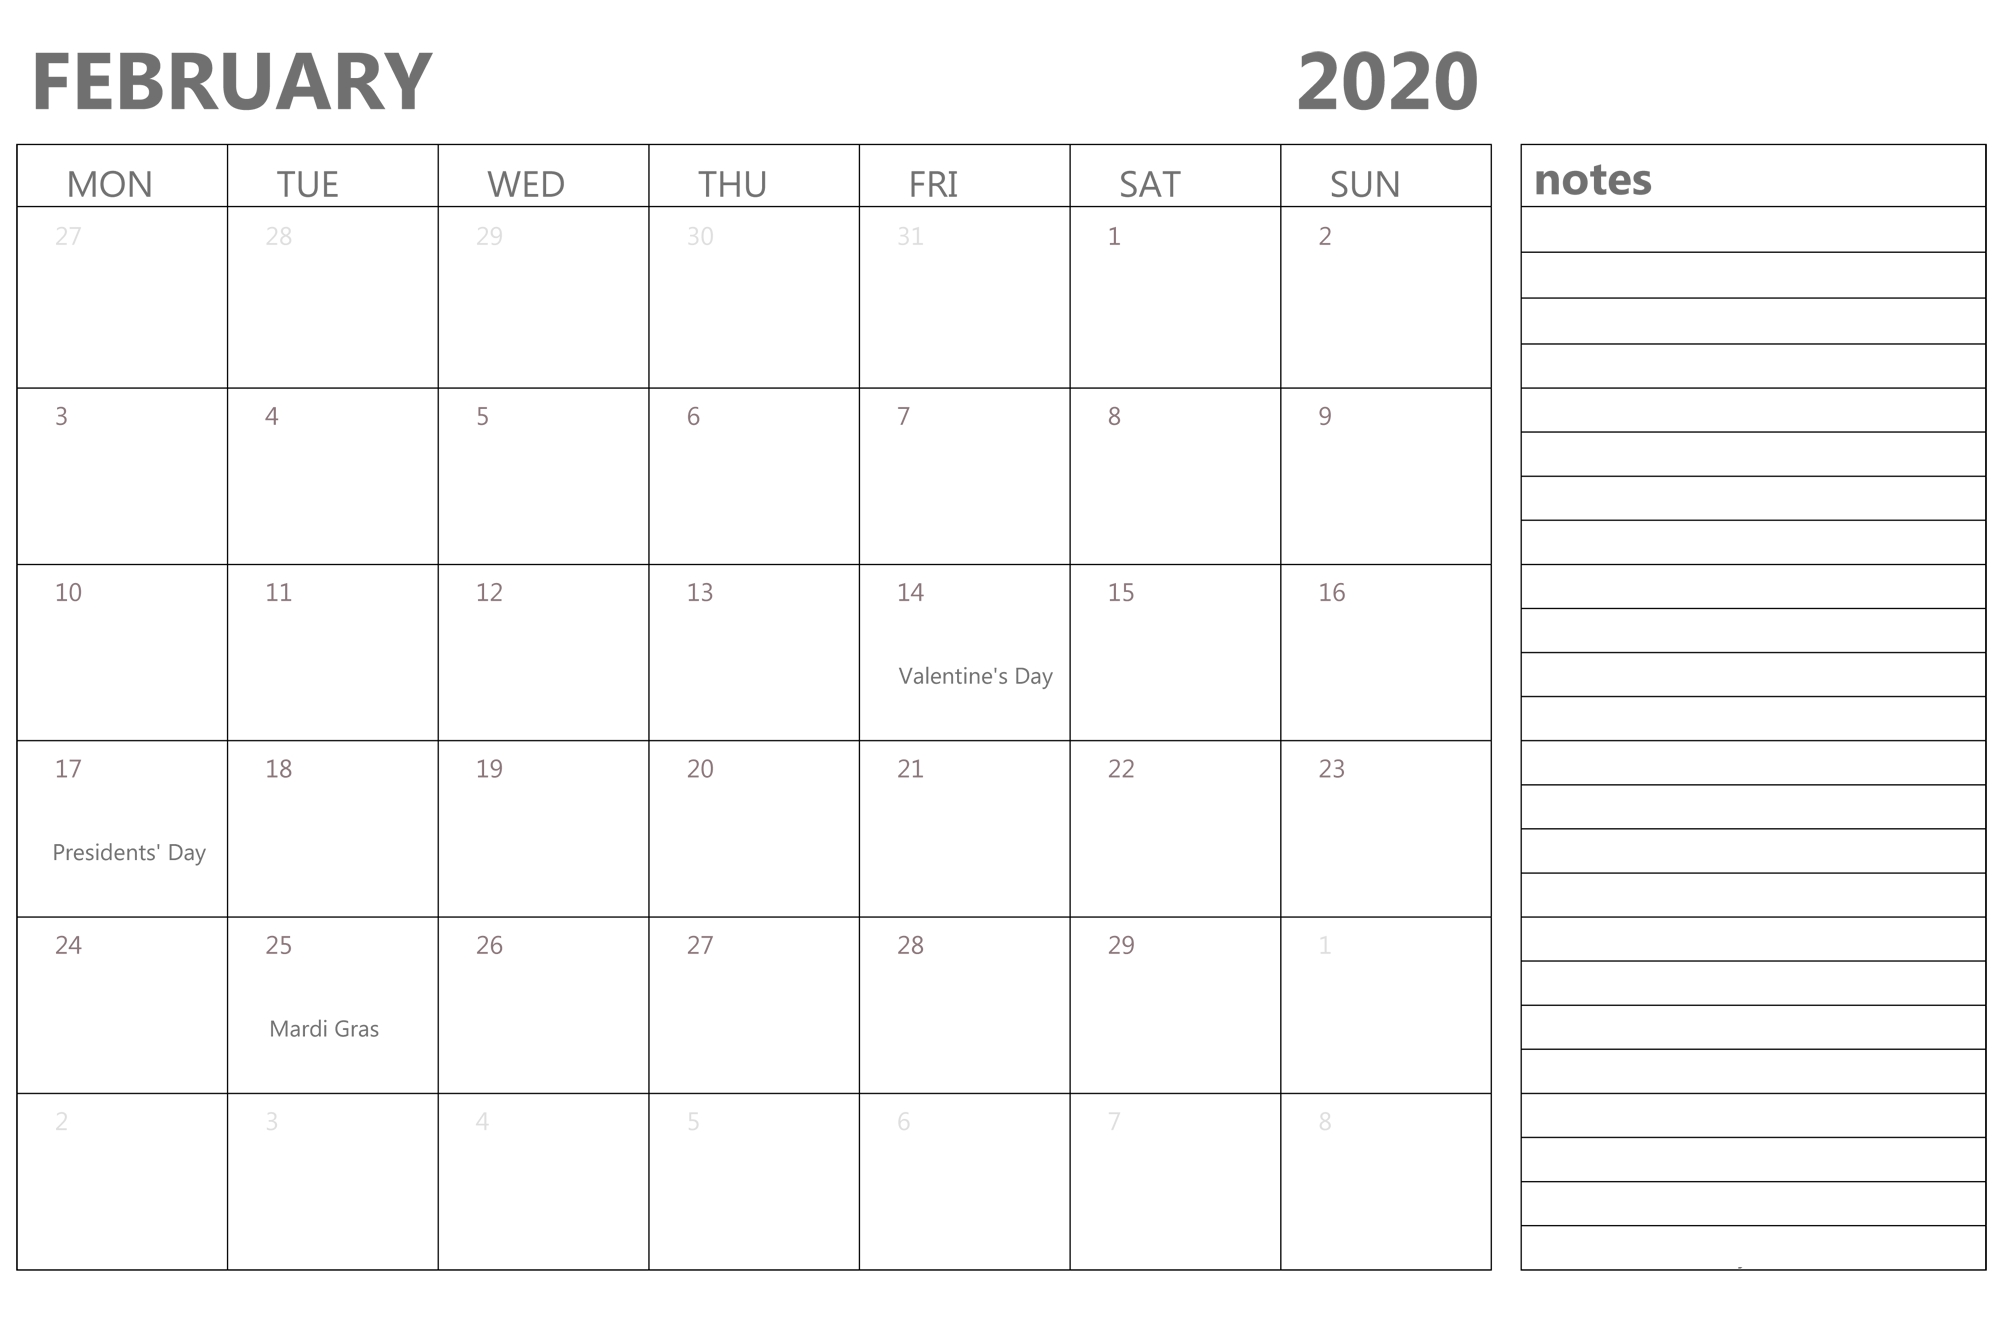 2020 February Calendar With Notes - 2019 Calendars For